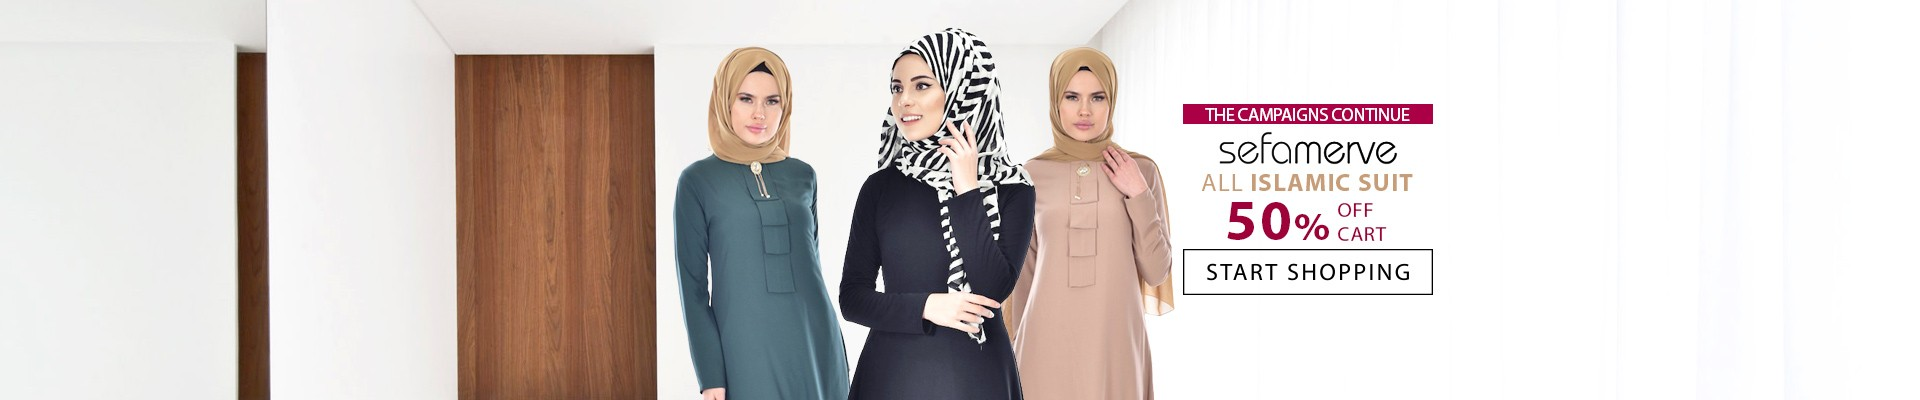 50% Off Cart on ALL ISLAMIC SUITS